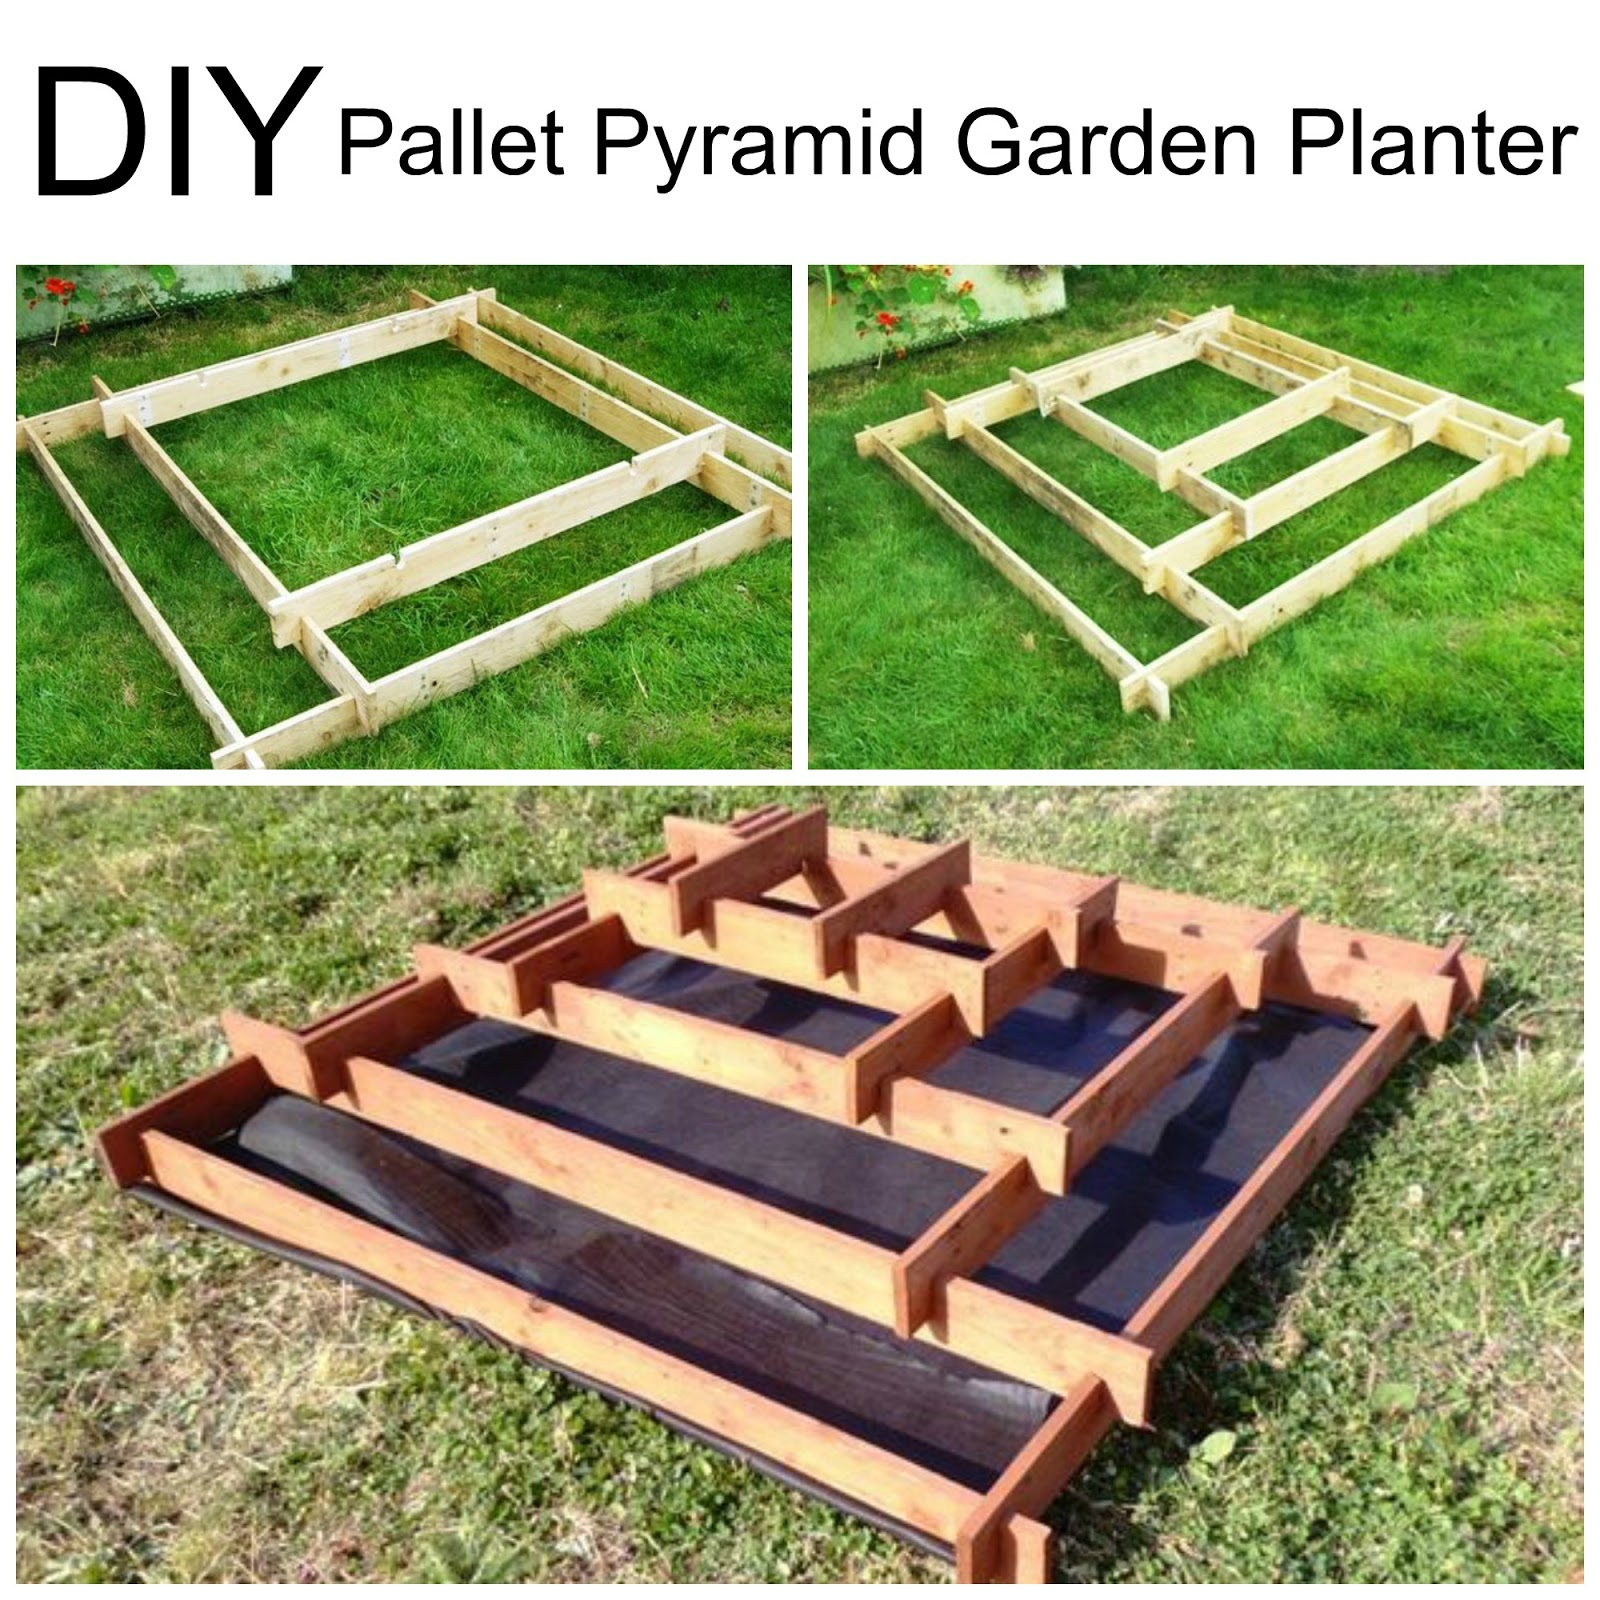 Diy Pallet Pyramid Garden Planter This Gorgeous Takes About 2 Hours To Make But Is Simple Enough For A Beginner